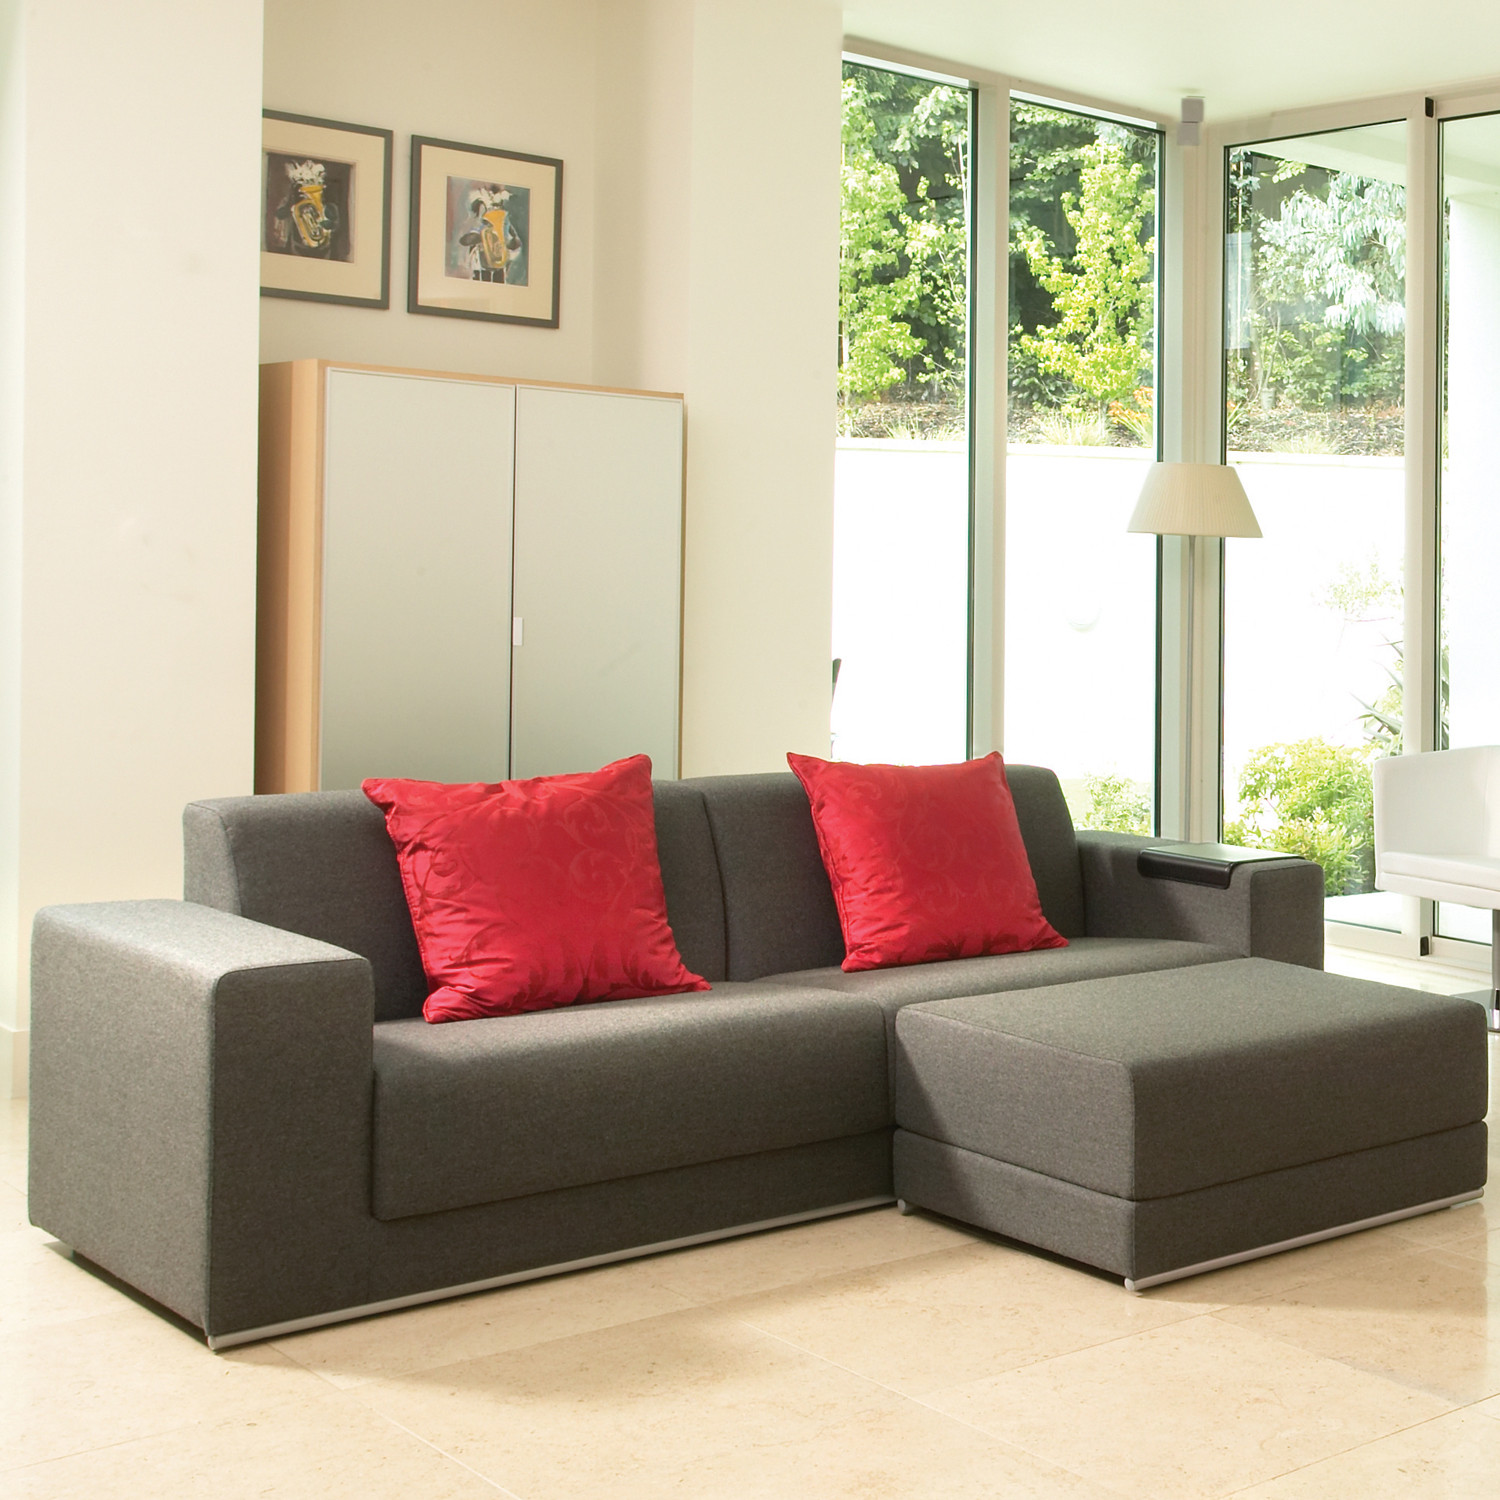 Ortega Sofa and Ottoman by Connection